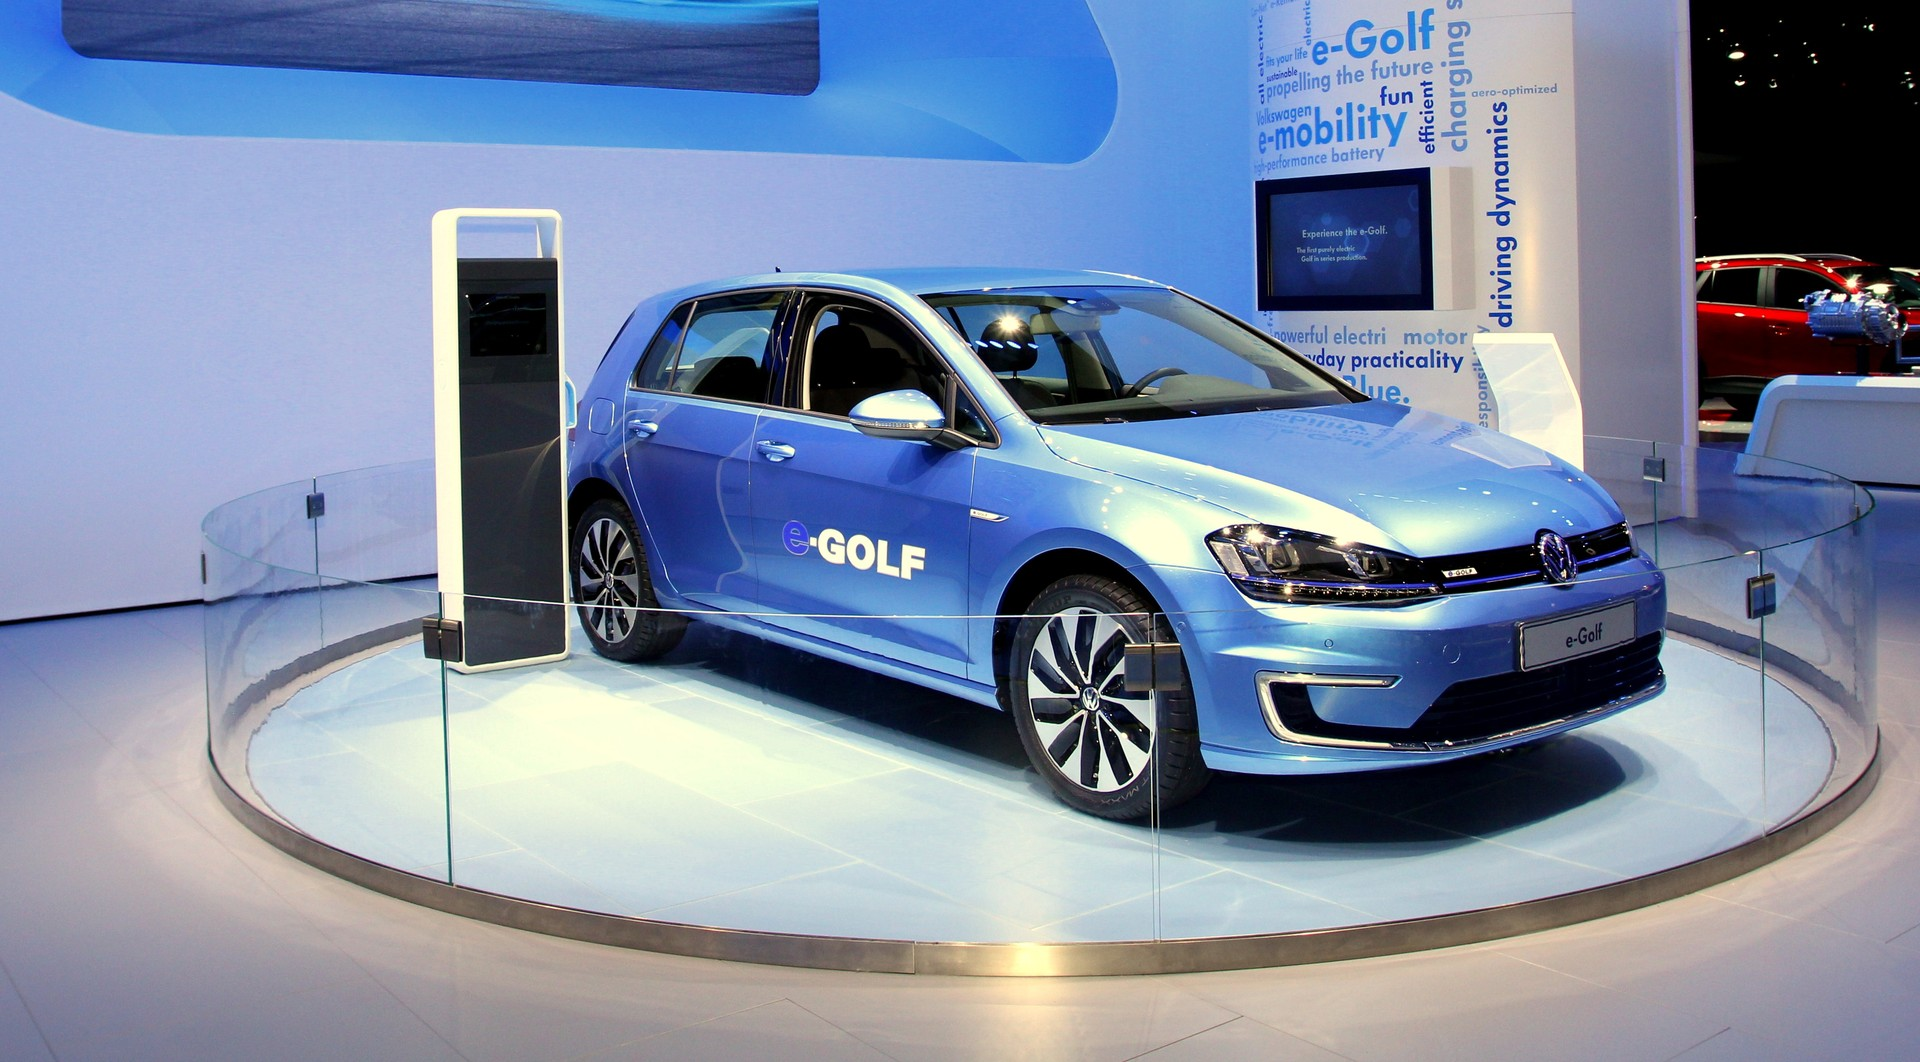 electric motor manufacturer volkswagen e golf warn atv winch parts diagram and others not so excited about cars